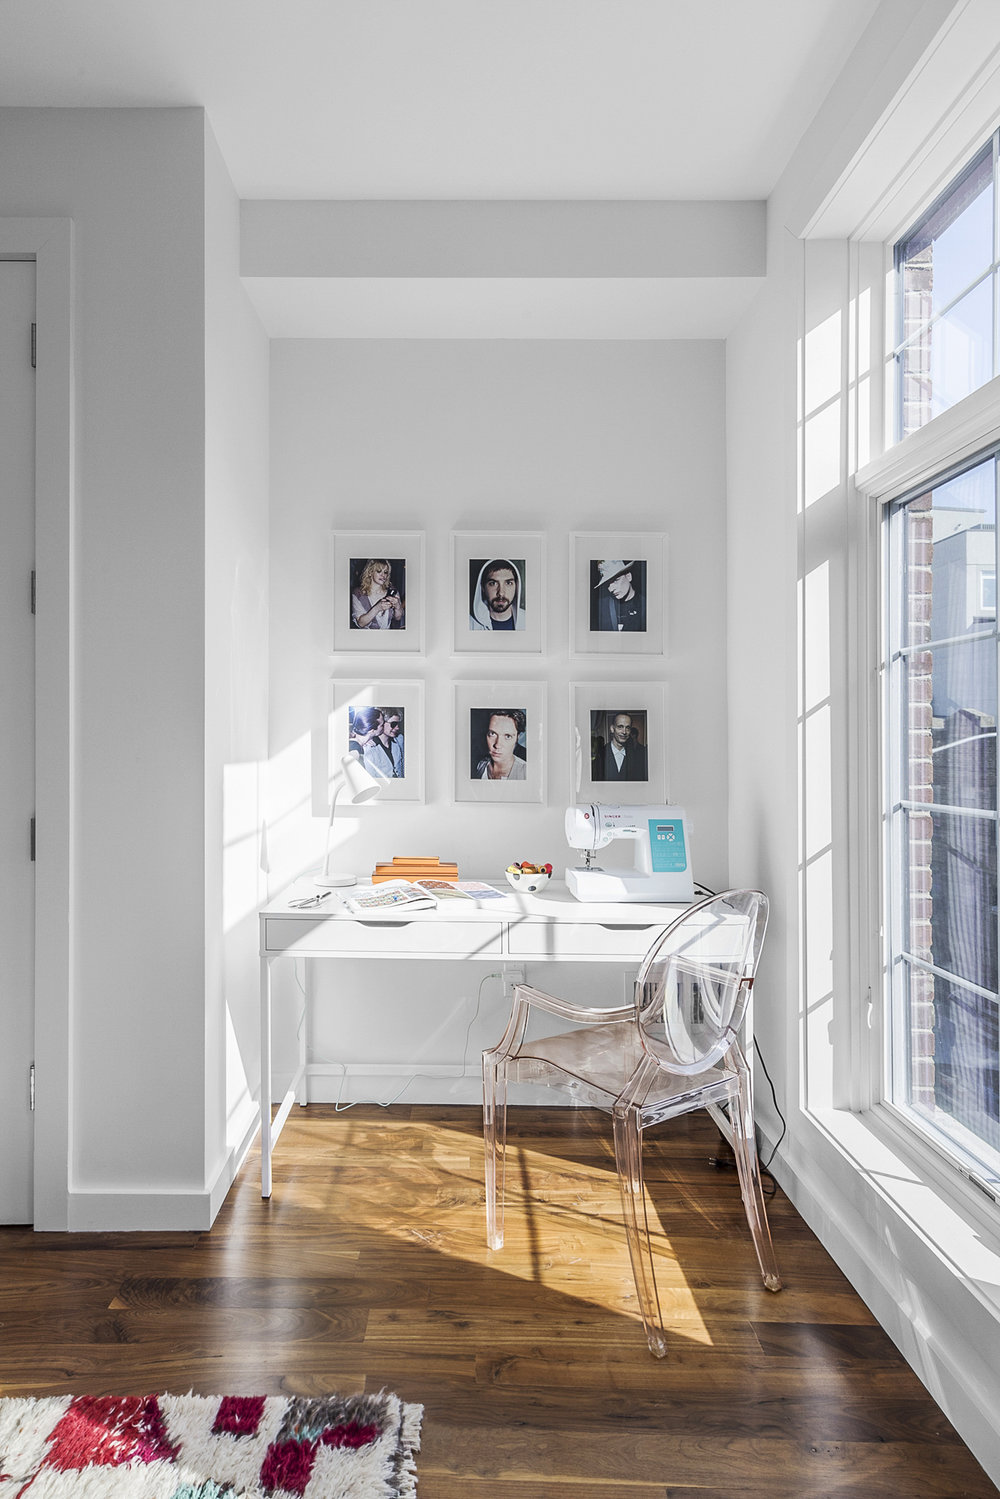 WILLIAMSBURG TOWNHOUSE 131 South 1st Street Hovey Design